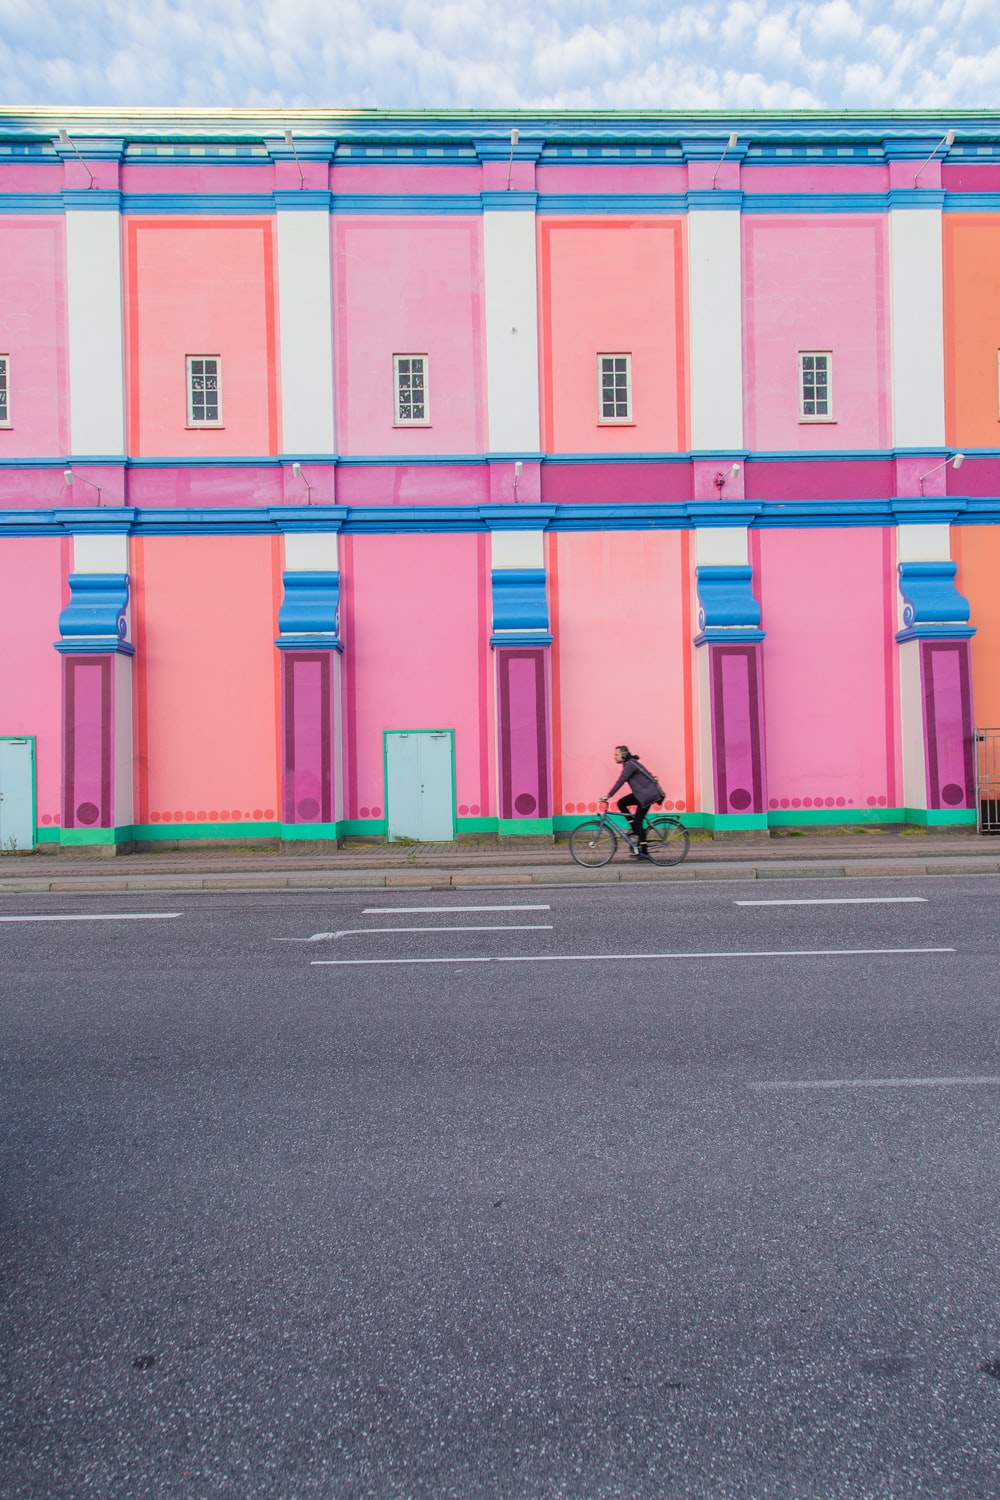 person driving a bike near multi-colored building during daytime